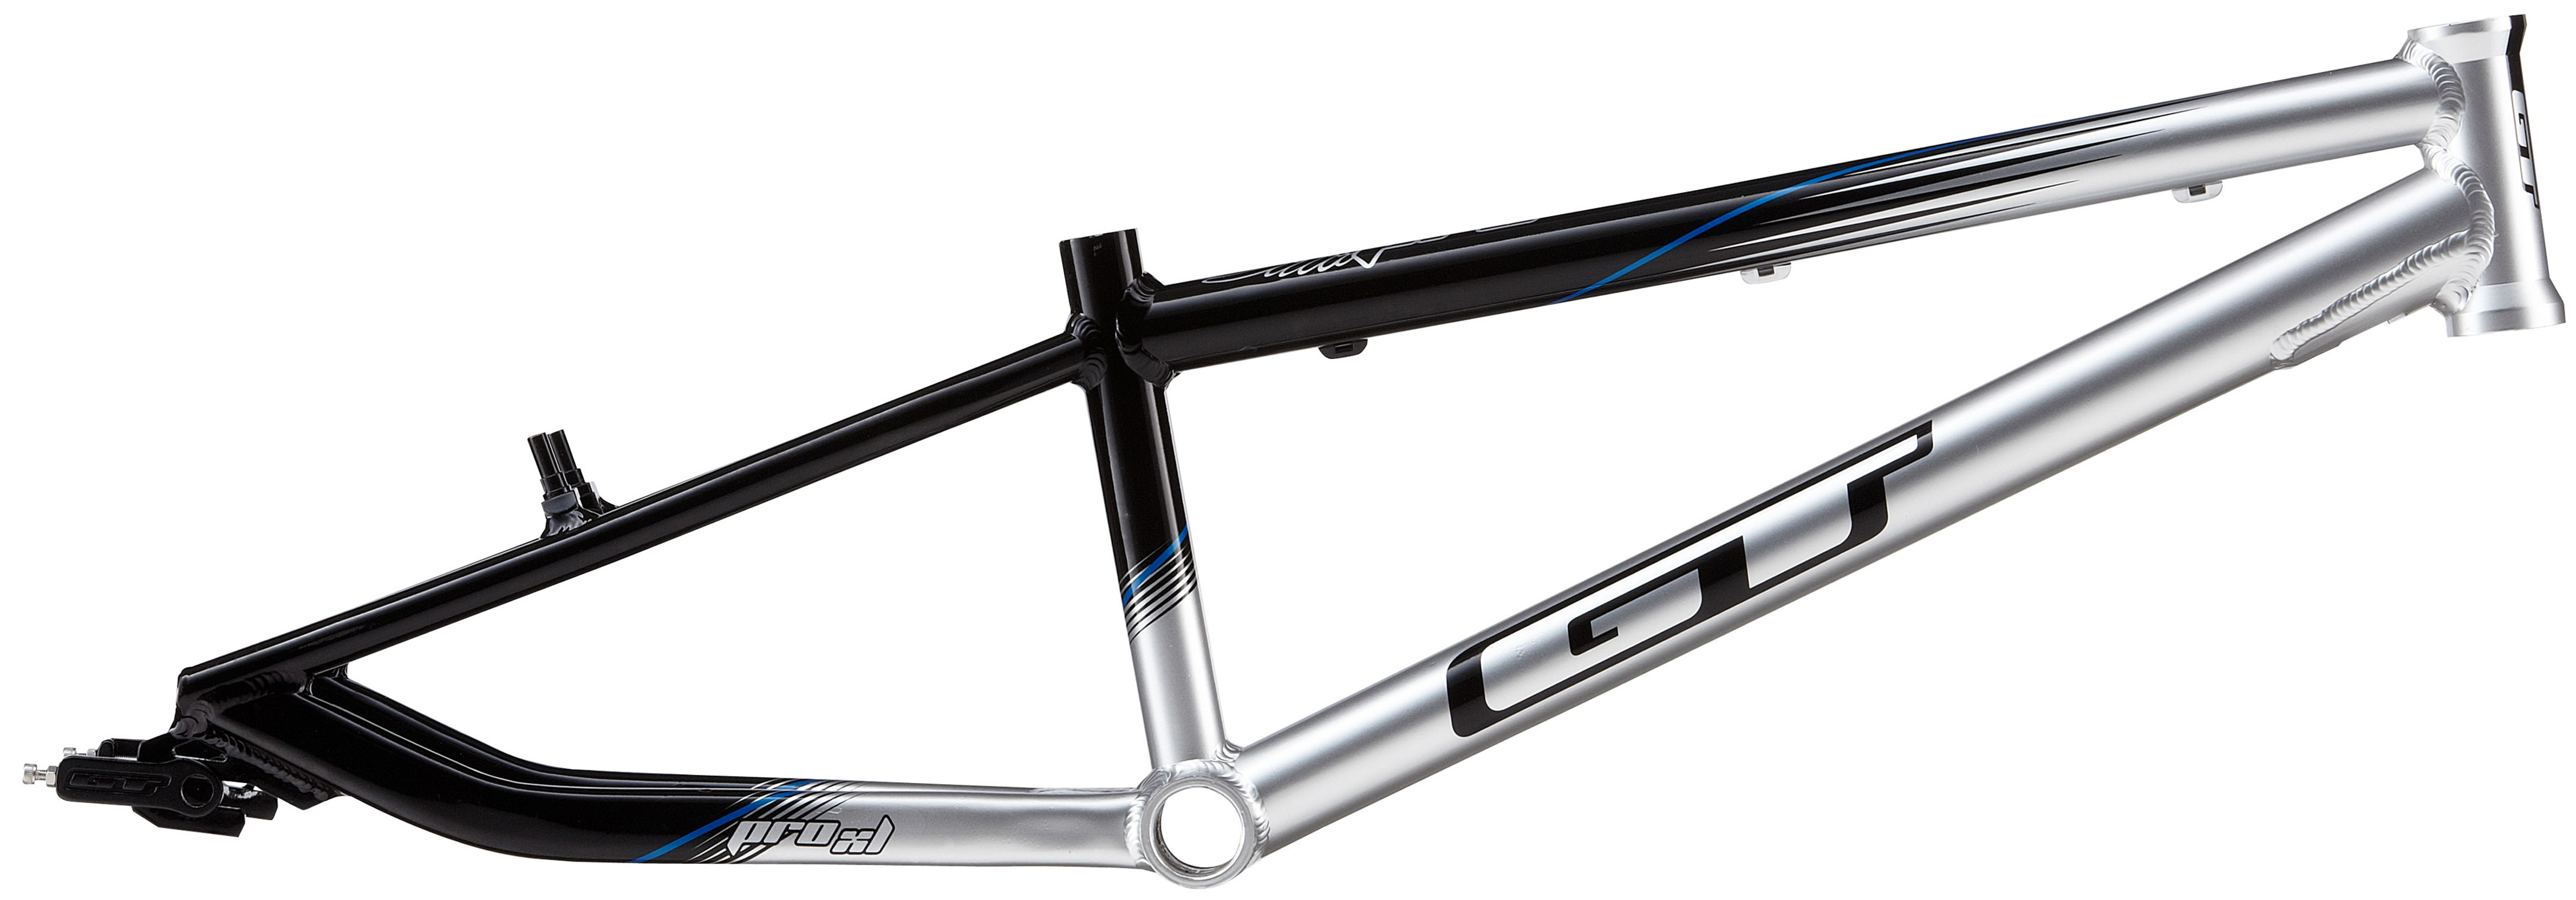 On Sale GT Pro Series Pro XL BMX Frame up to 60% off